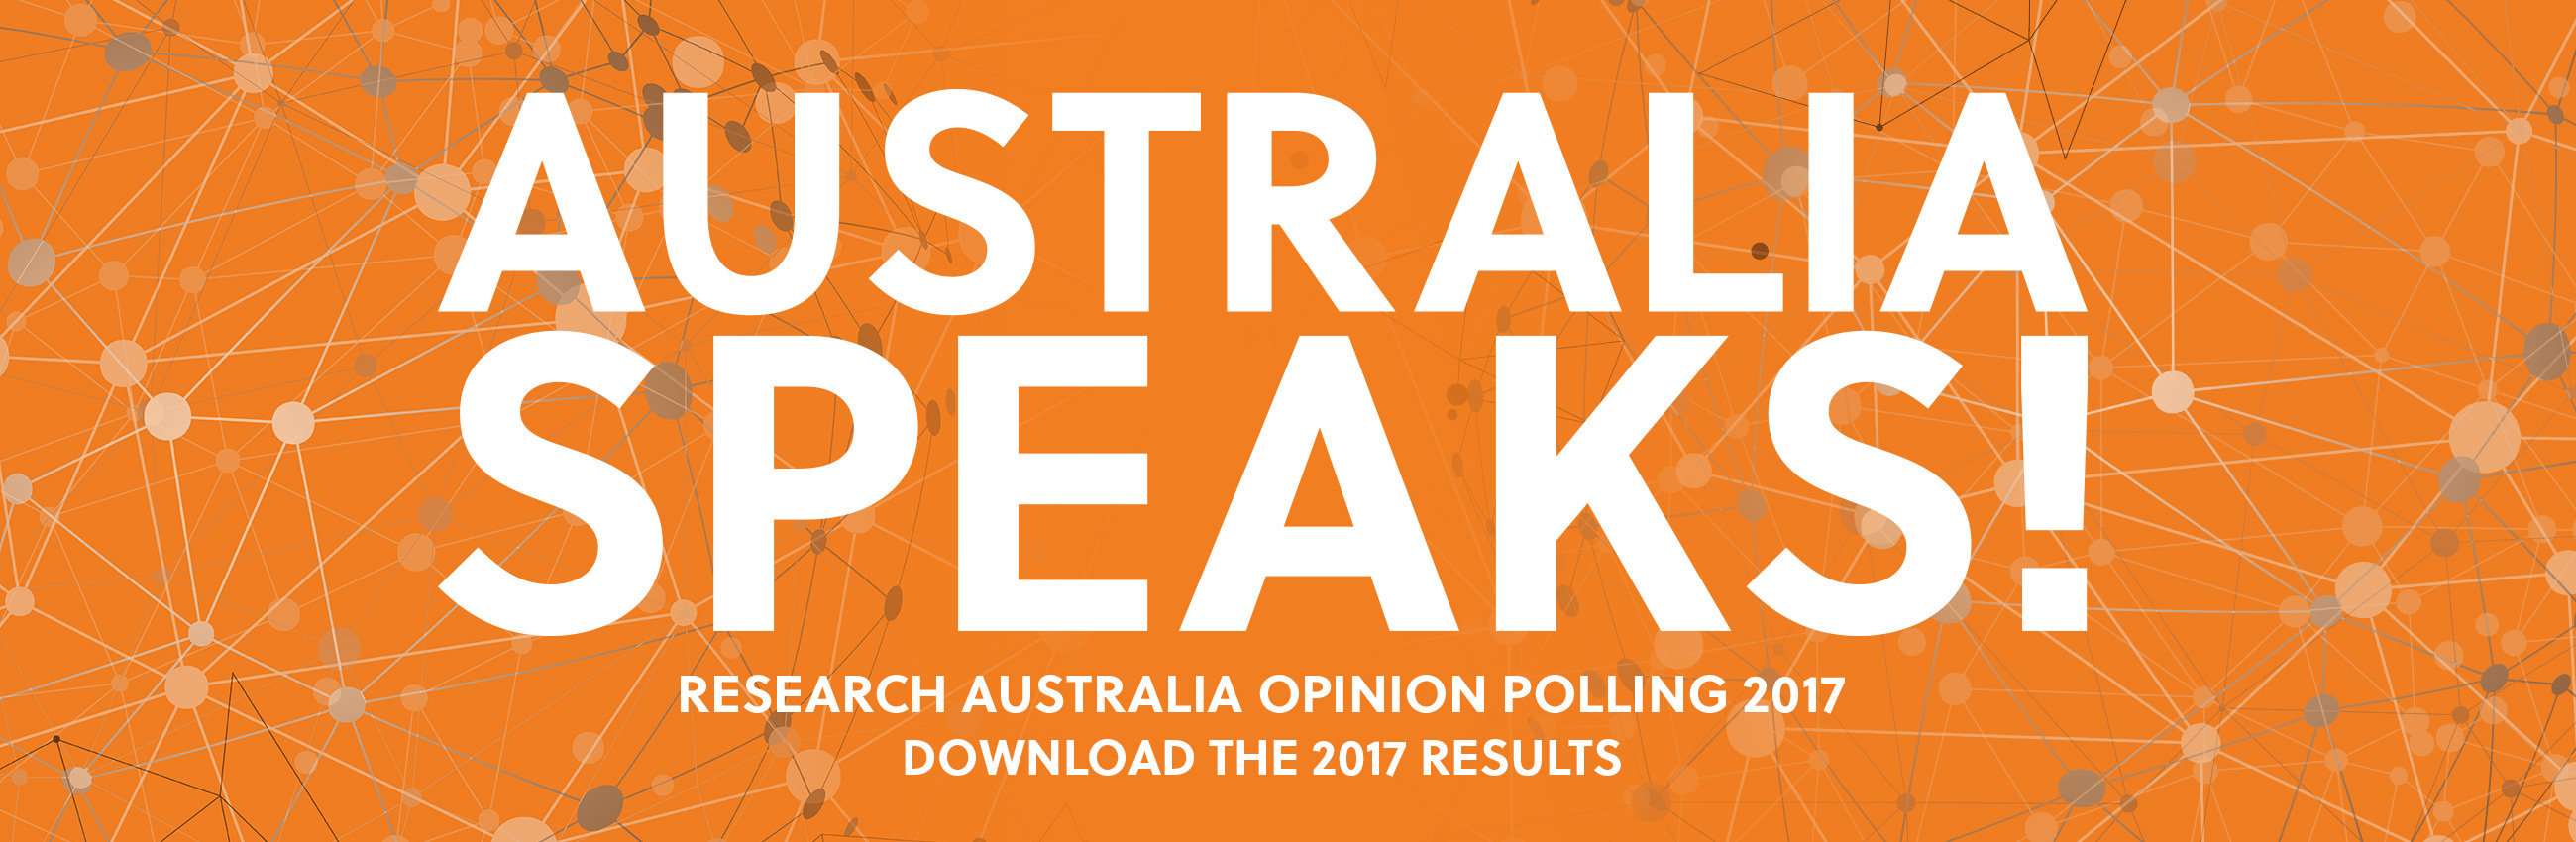 Research Australia Opinion Polling 2017